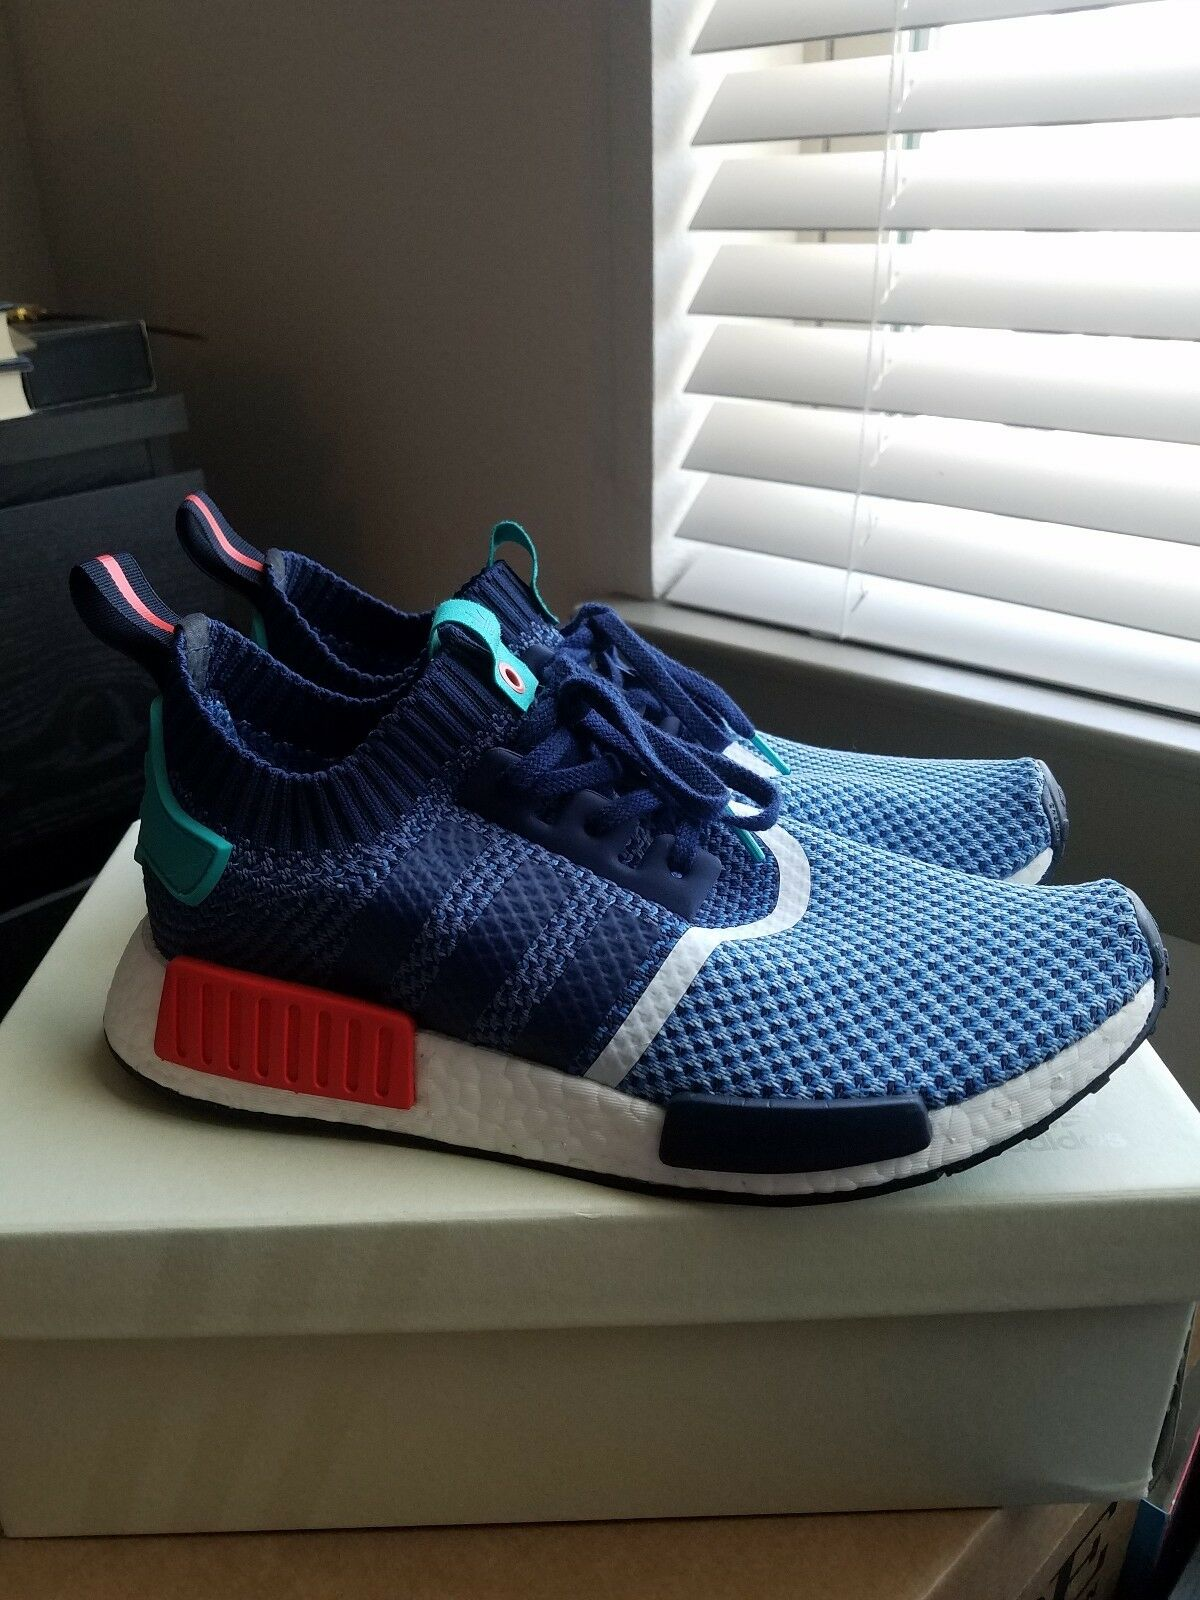 BB5051 - Adidas NMD R1 Packers - US 8.5 - Lightly used